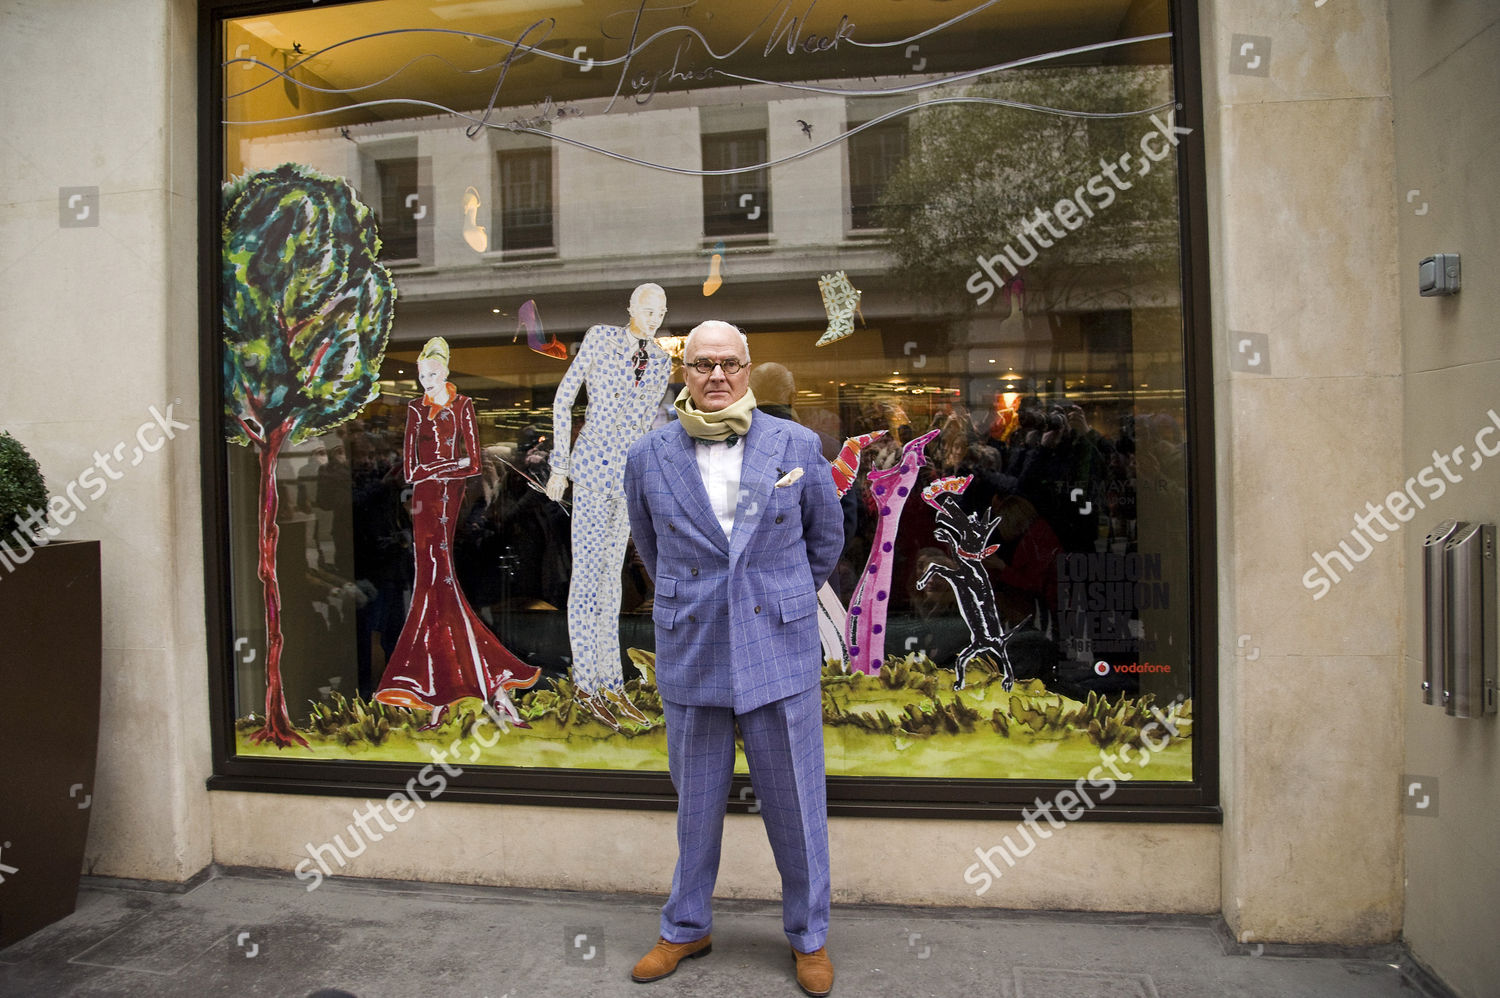 e6cc0026a7aa7 Manolo Blahnik unveils a window display designed by him, for London Fashion  Week. May